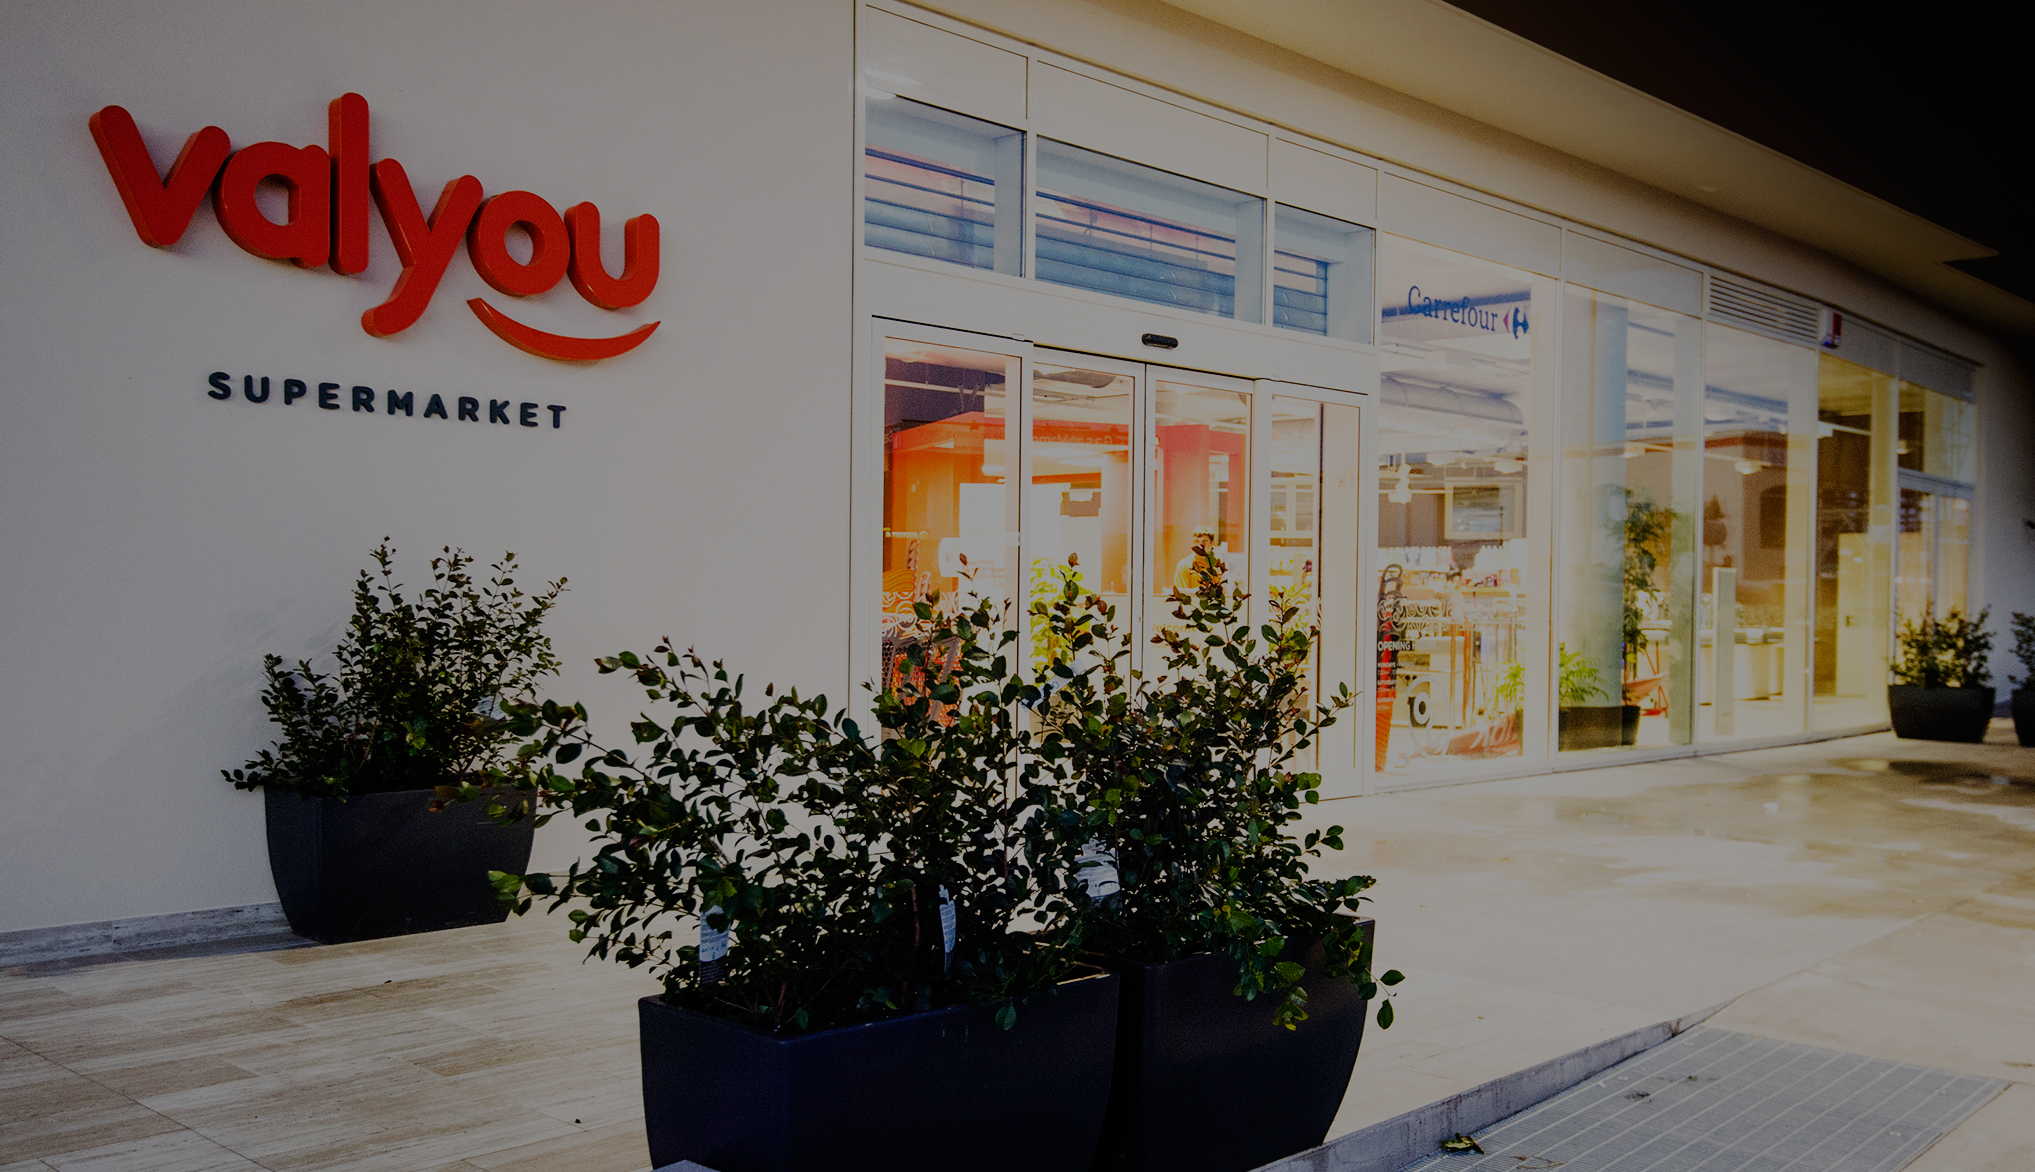 Valyou Supermarket Mellieha opens its doors